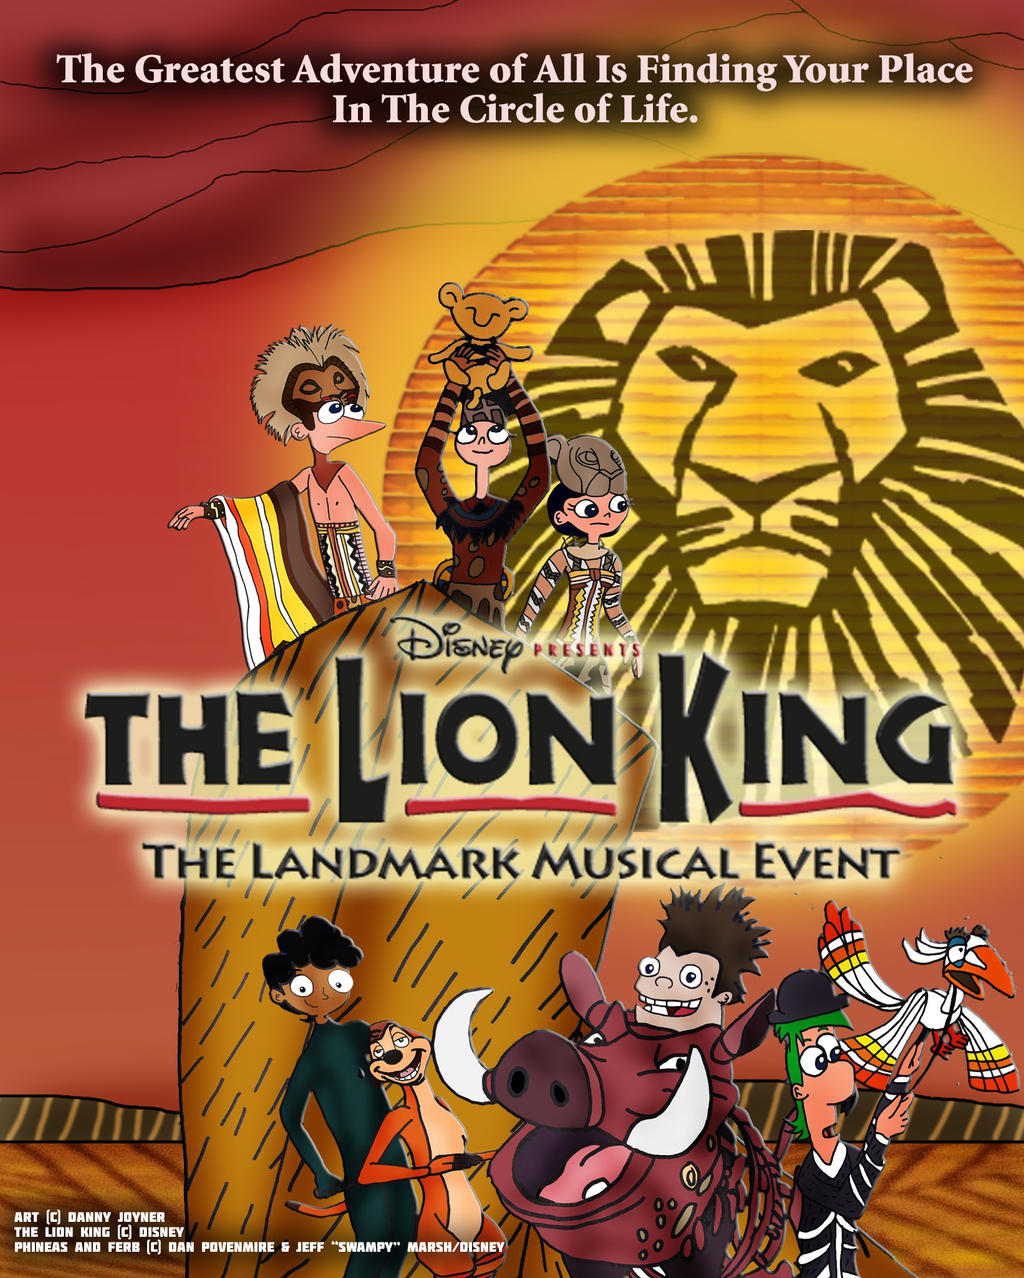 Pnf In Disney S The Lion King On Broadway Poster By Rdj1995 On Deviantart